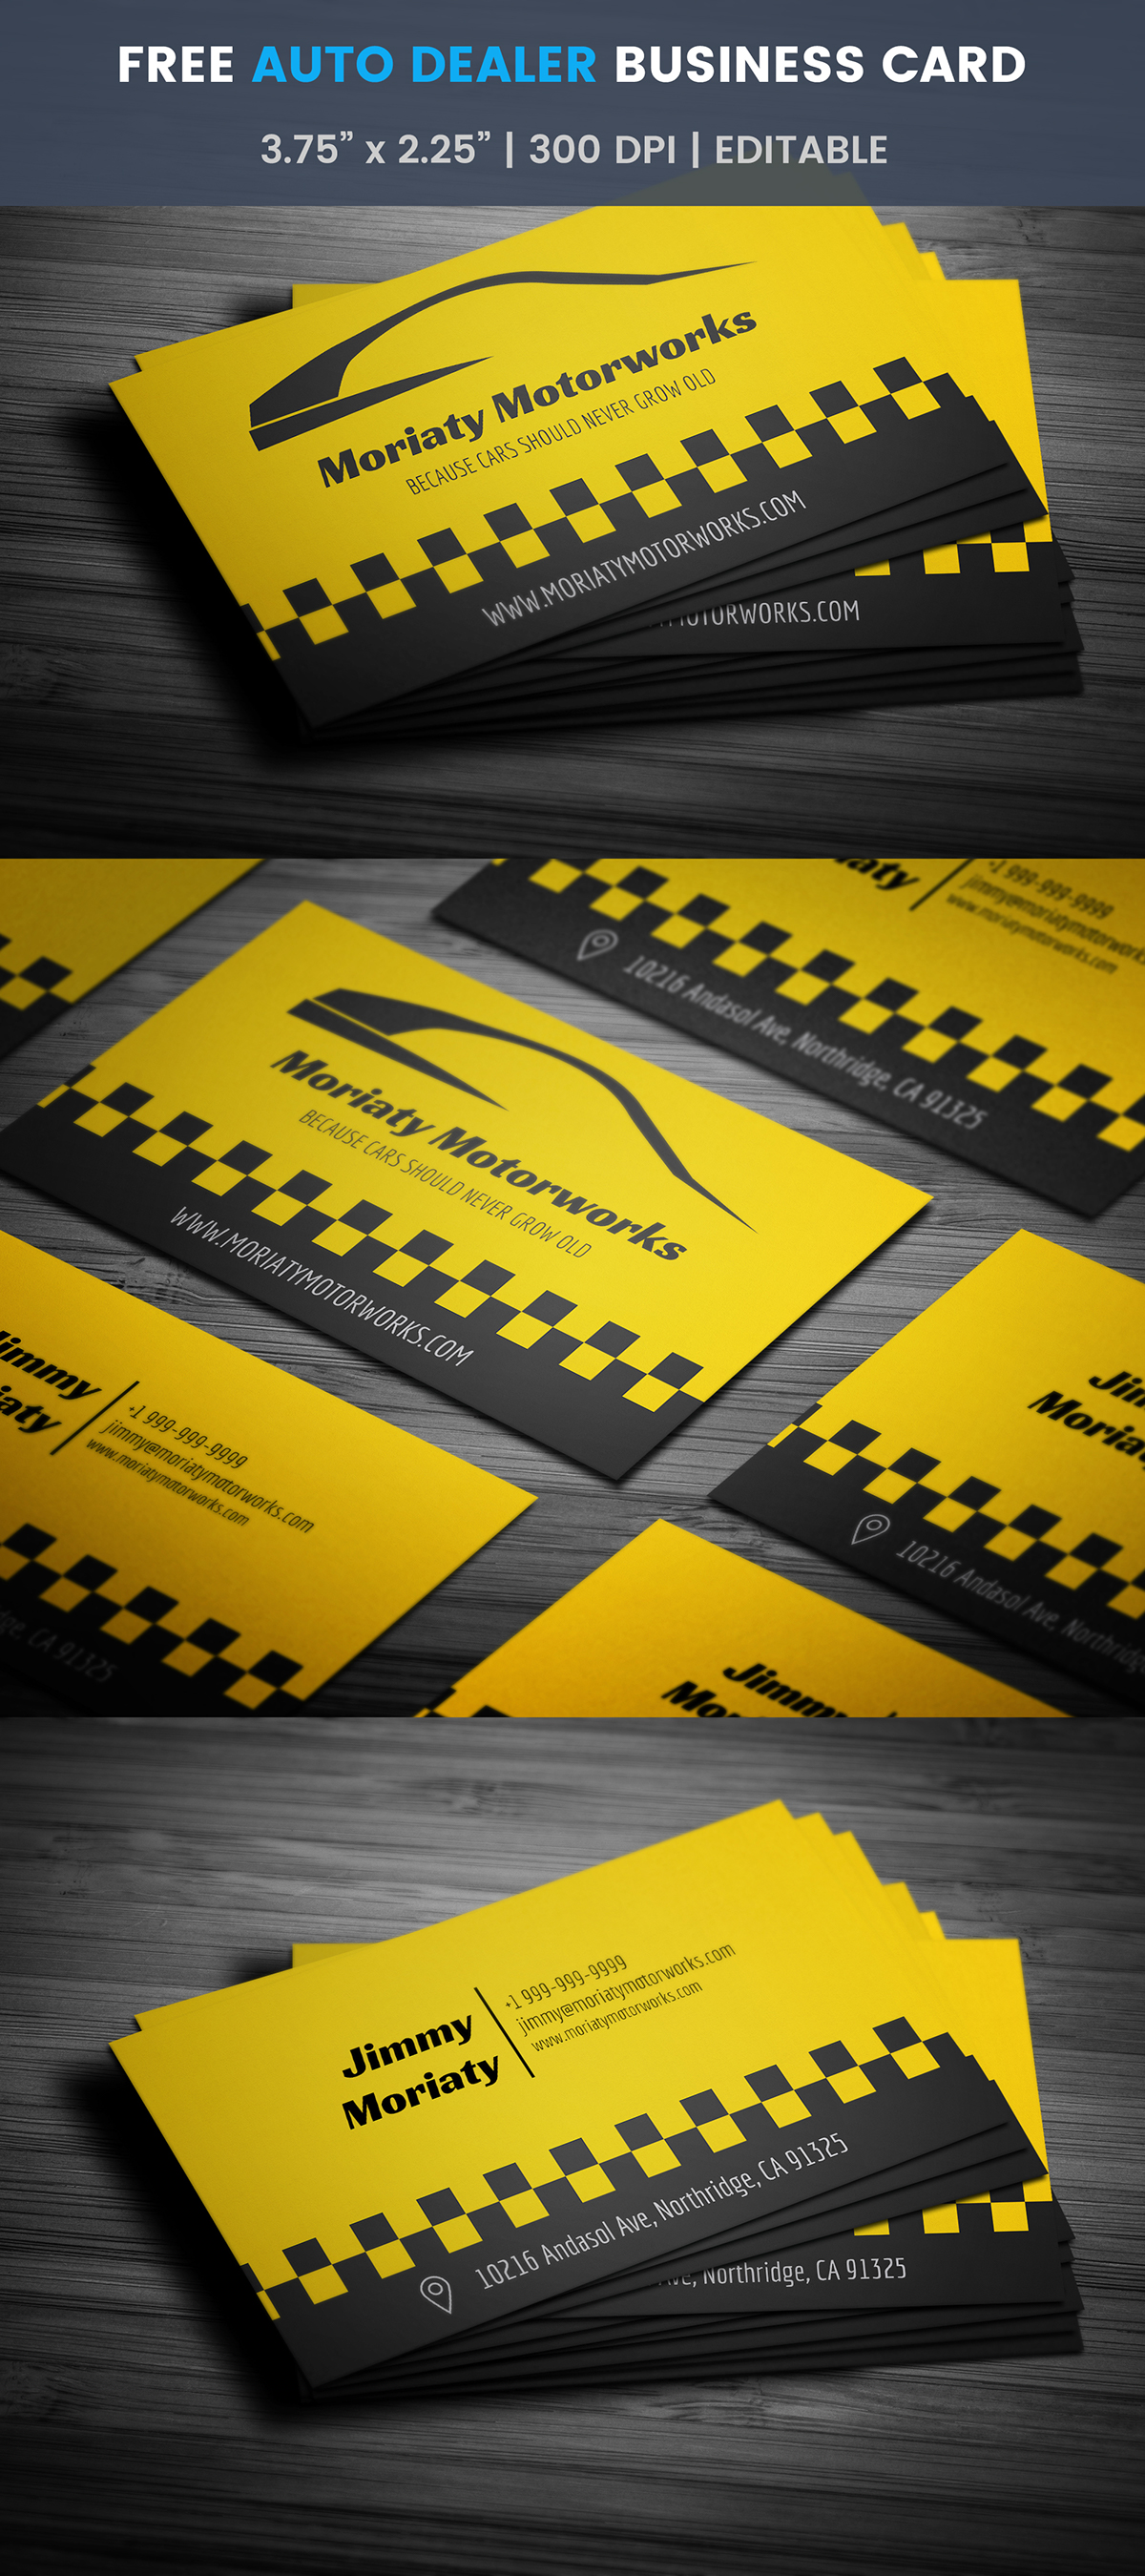 Free automotive business card template on pantone canvas gallery free automotive business card template fbccfo Gallery